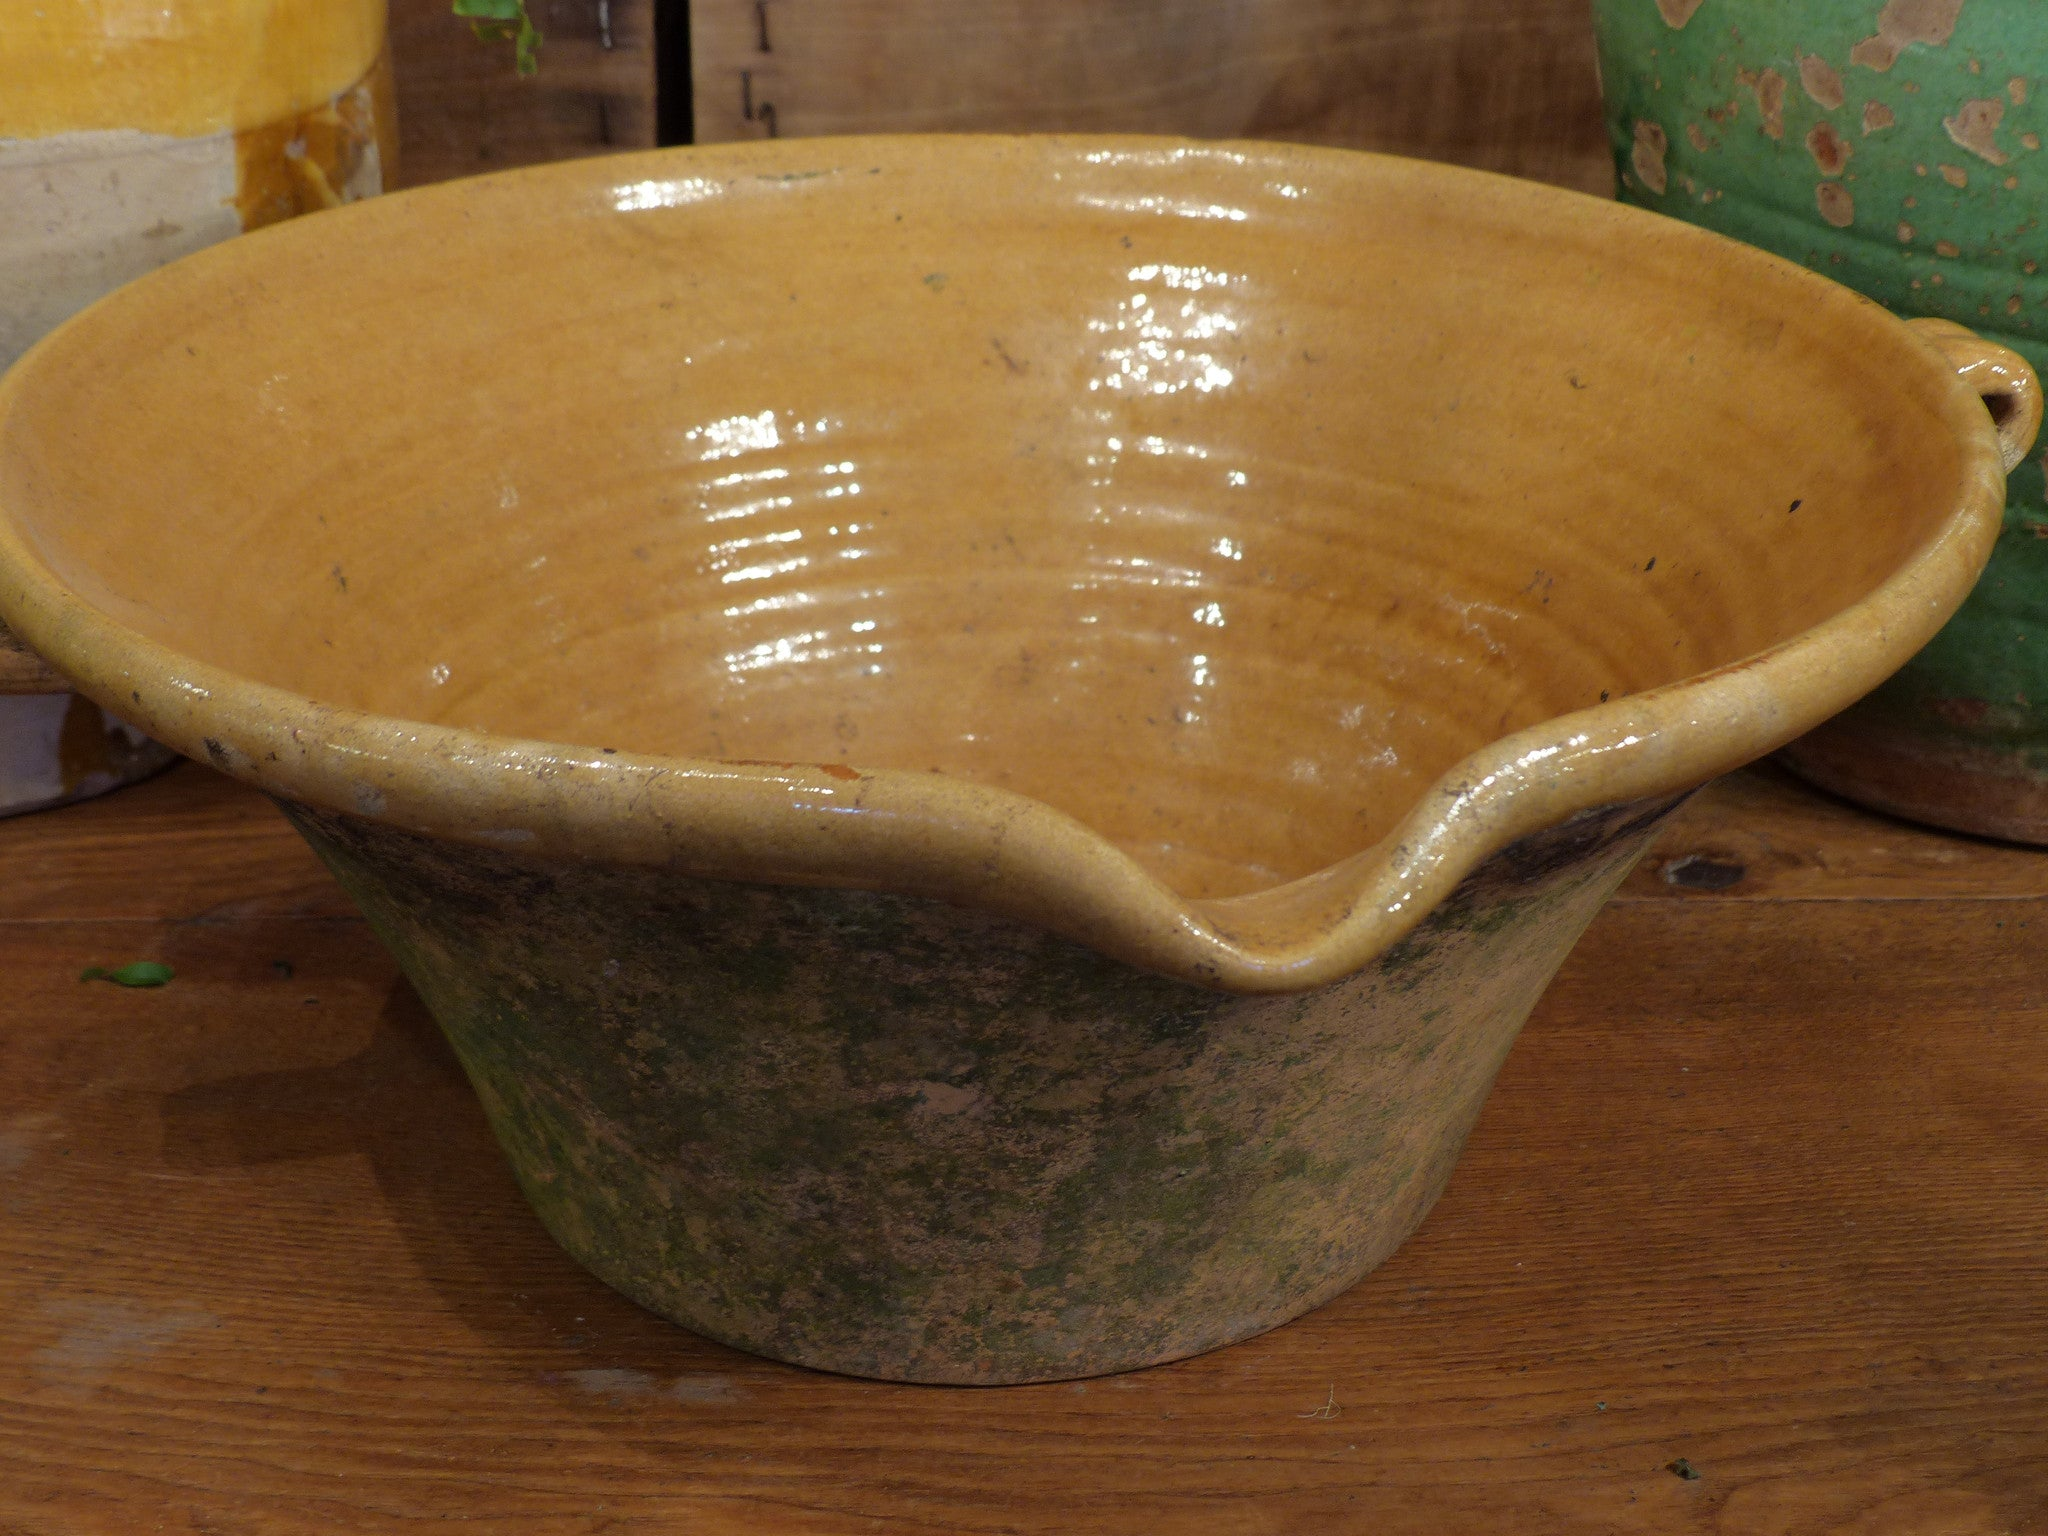 19th century French confit bowl with ochre glaze 2/2